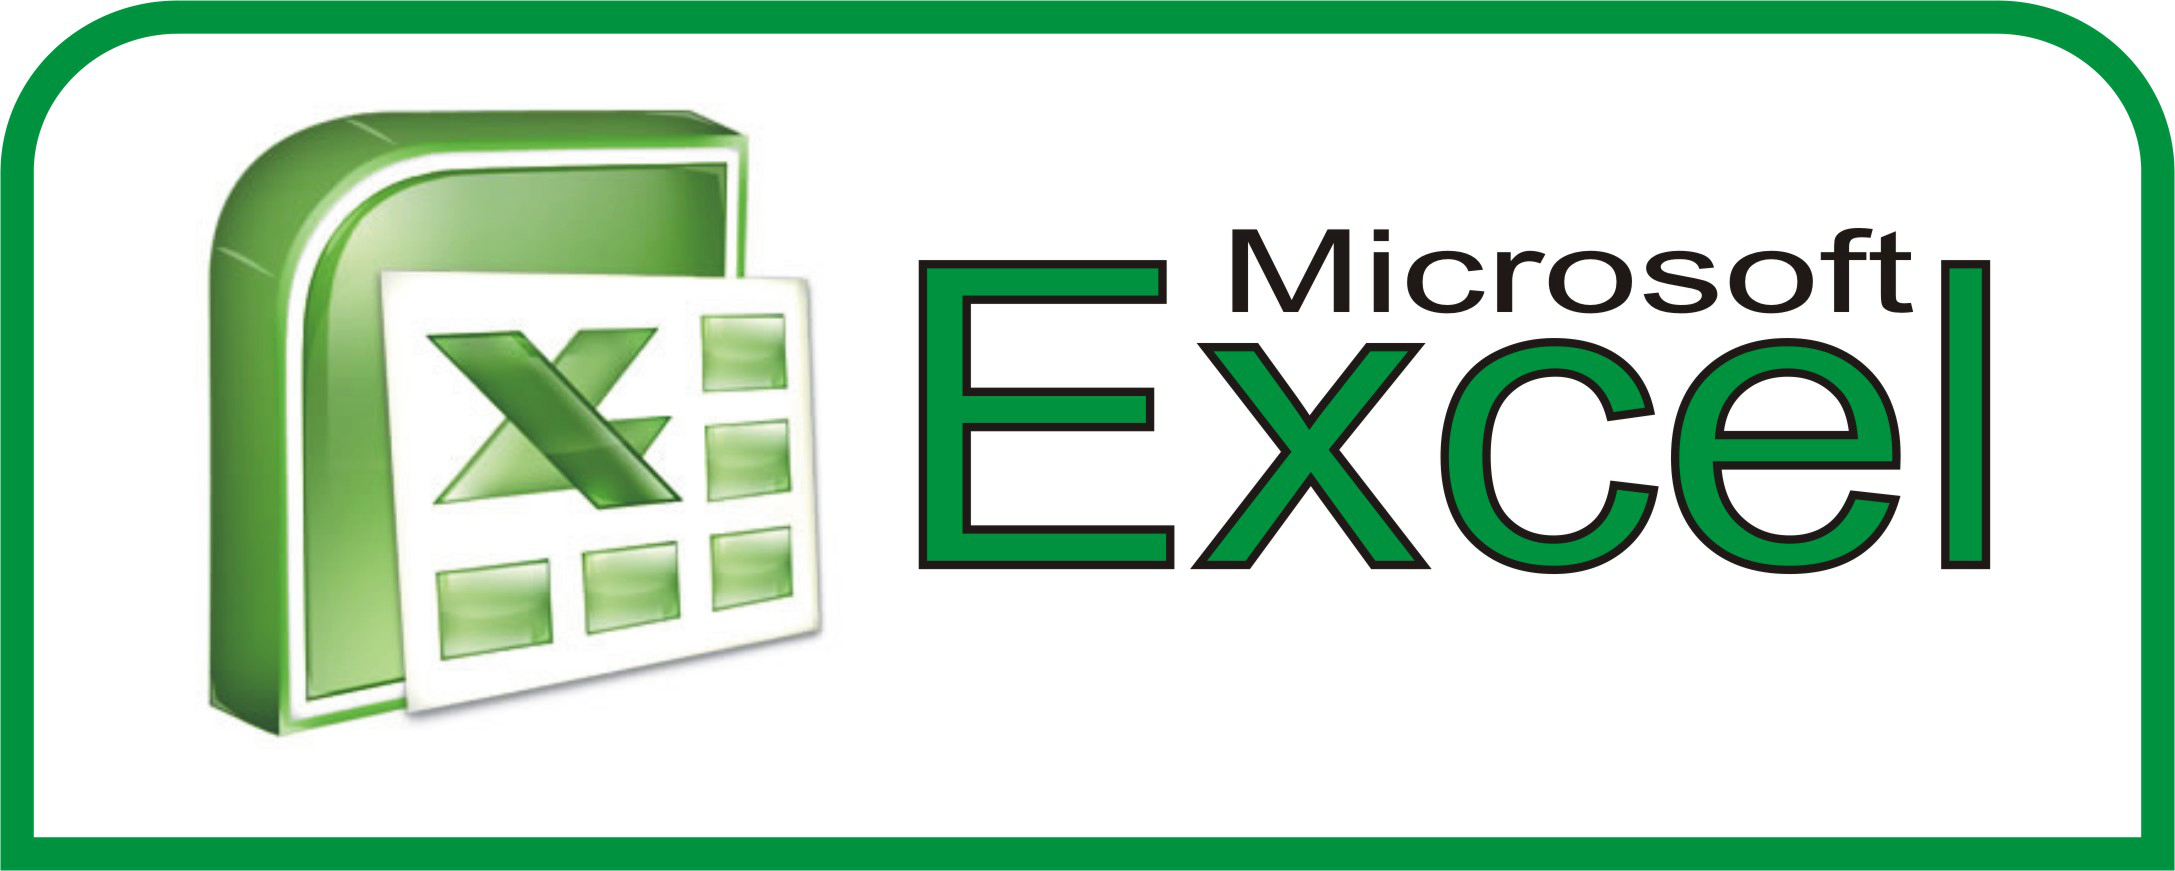 Ediblewildsus  Unusual  Excel Shortcuts You Probably Didnt Know About  Techdissected With Fascinating Excel Sum Not Working Besides Creating Charts In Excel  Furthermore How To Use Conditional Formatting In Excel  With Beautiful How To Insert Graph In Excel Also Calculating Median In Excel In Addition Excel Template Schedule And Apply Formula To Entire Column Excel As Well As Excel Spreadsheet Online Additionally How To Count The Number Of Cells In Excel From Techdissectedcom With Ediblewildsus  Fascinating  Excel Shortcuts You Probably Didnt Know About  Techdissected With Beautiful Excel Sum Not Working Besides Creating Charts In Excel  Furthermore How To Use Conditional Formatting In Excel  And Unusual How To Insert Graph In Excel Also Calculating Median In Excel In Addition Excel Template Schedule From Techdissectedcom